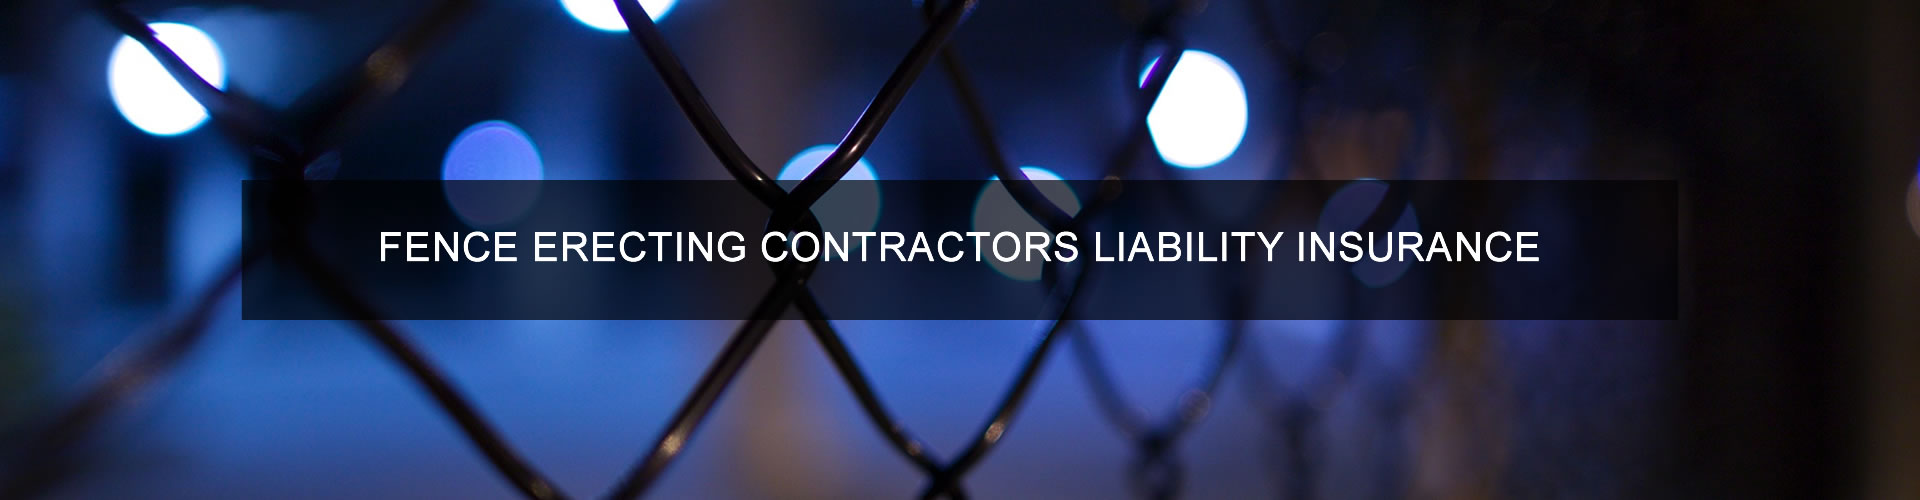 Fence Erecting Contractors Liability Insurance